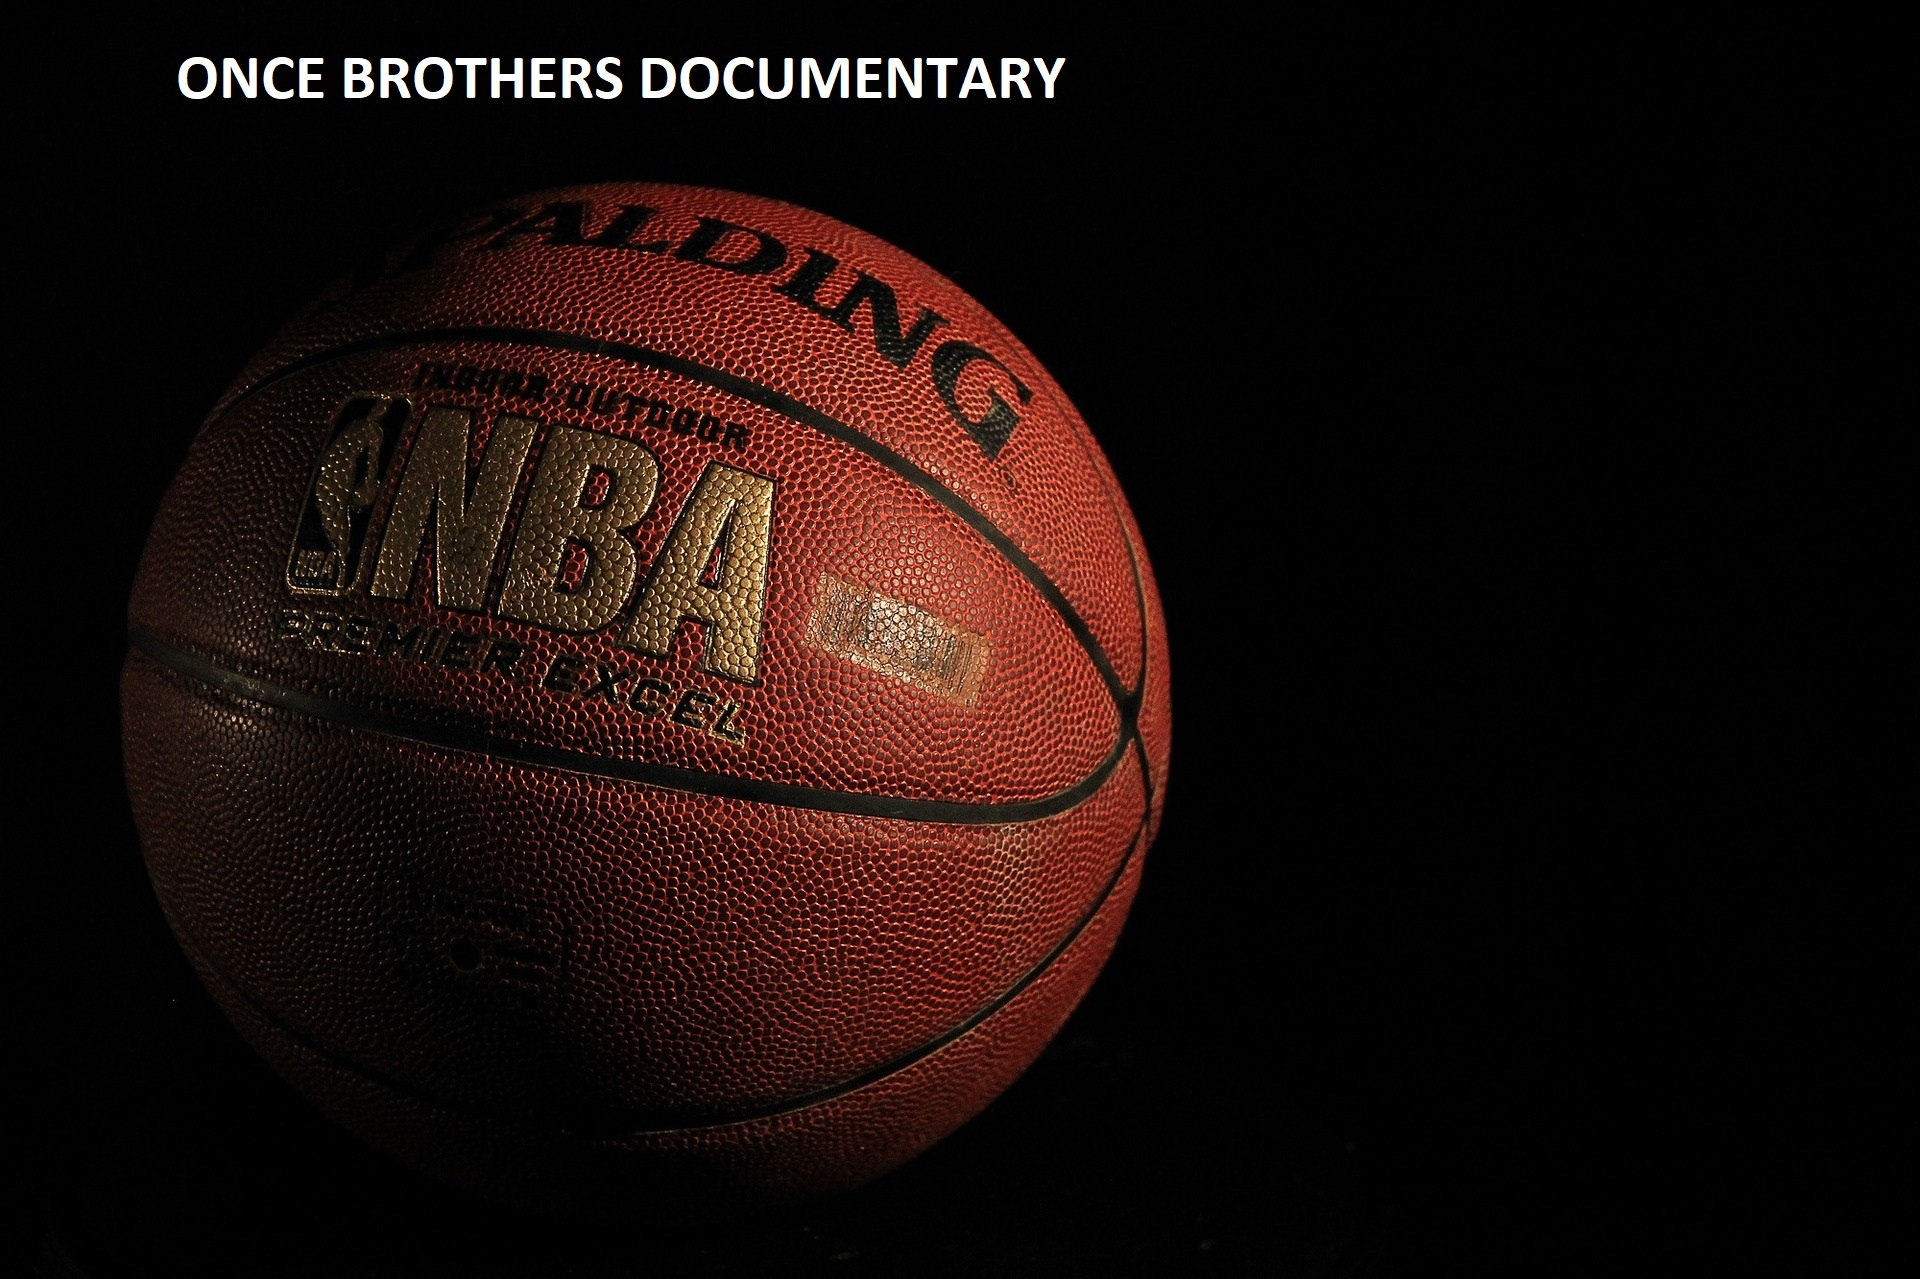 Once Brothers Documentary